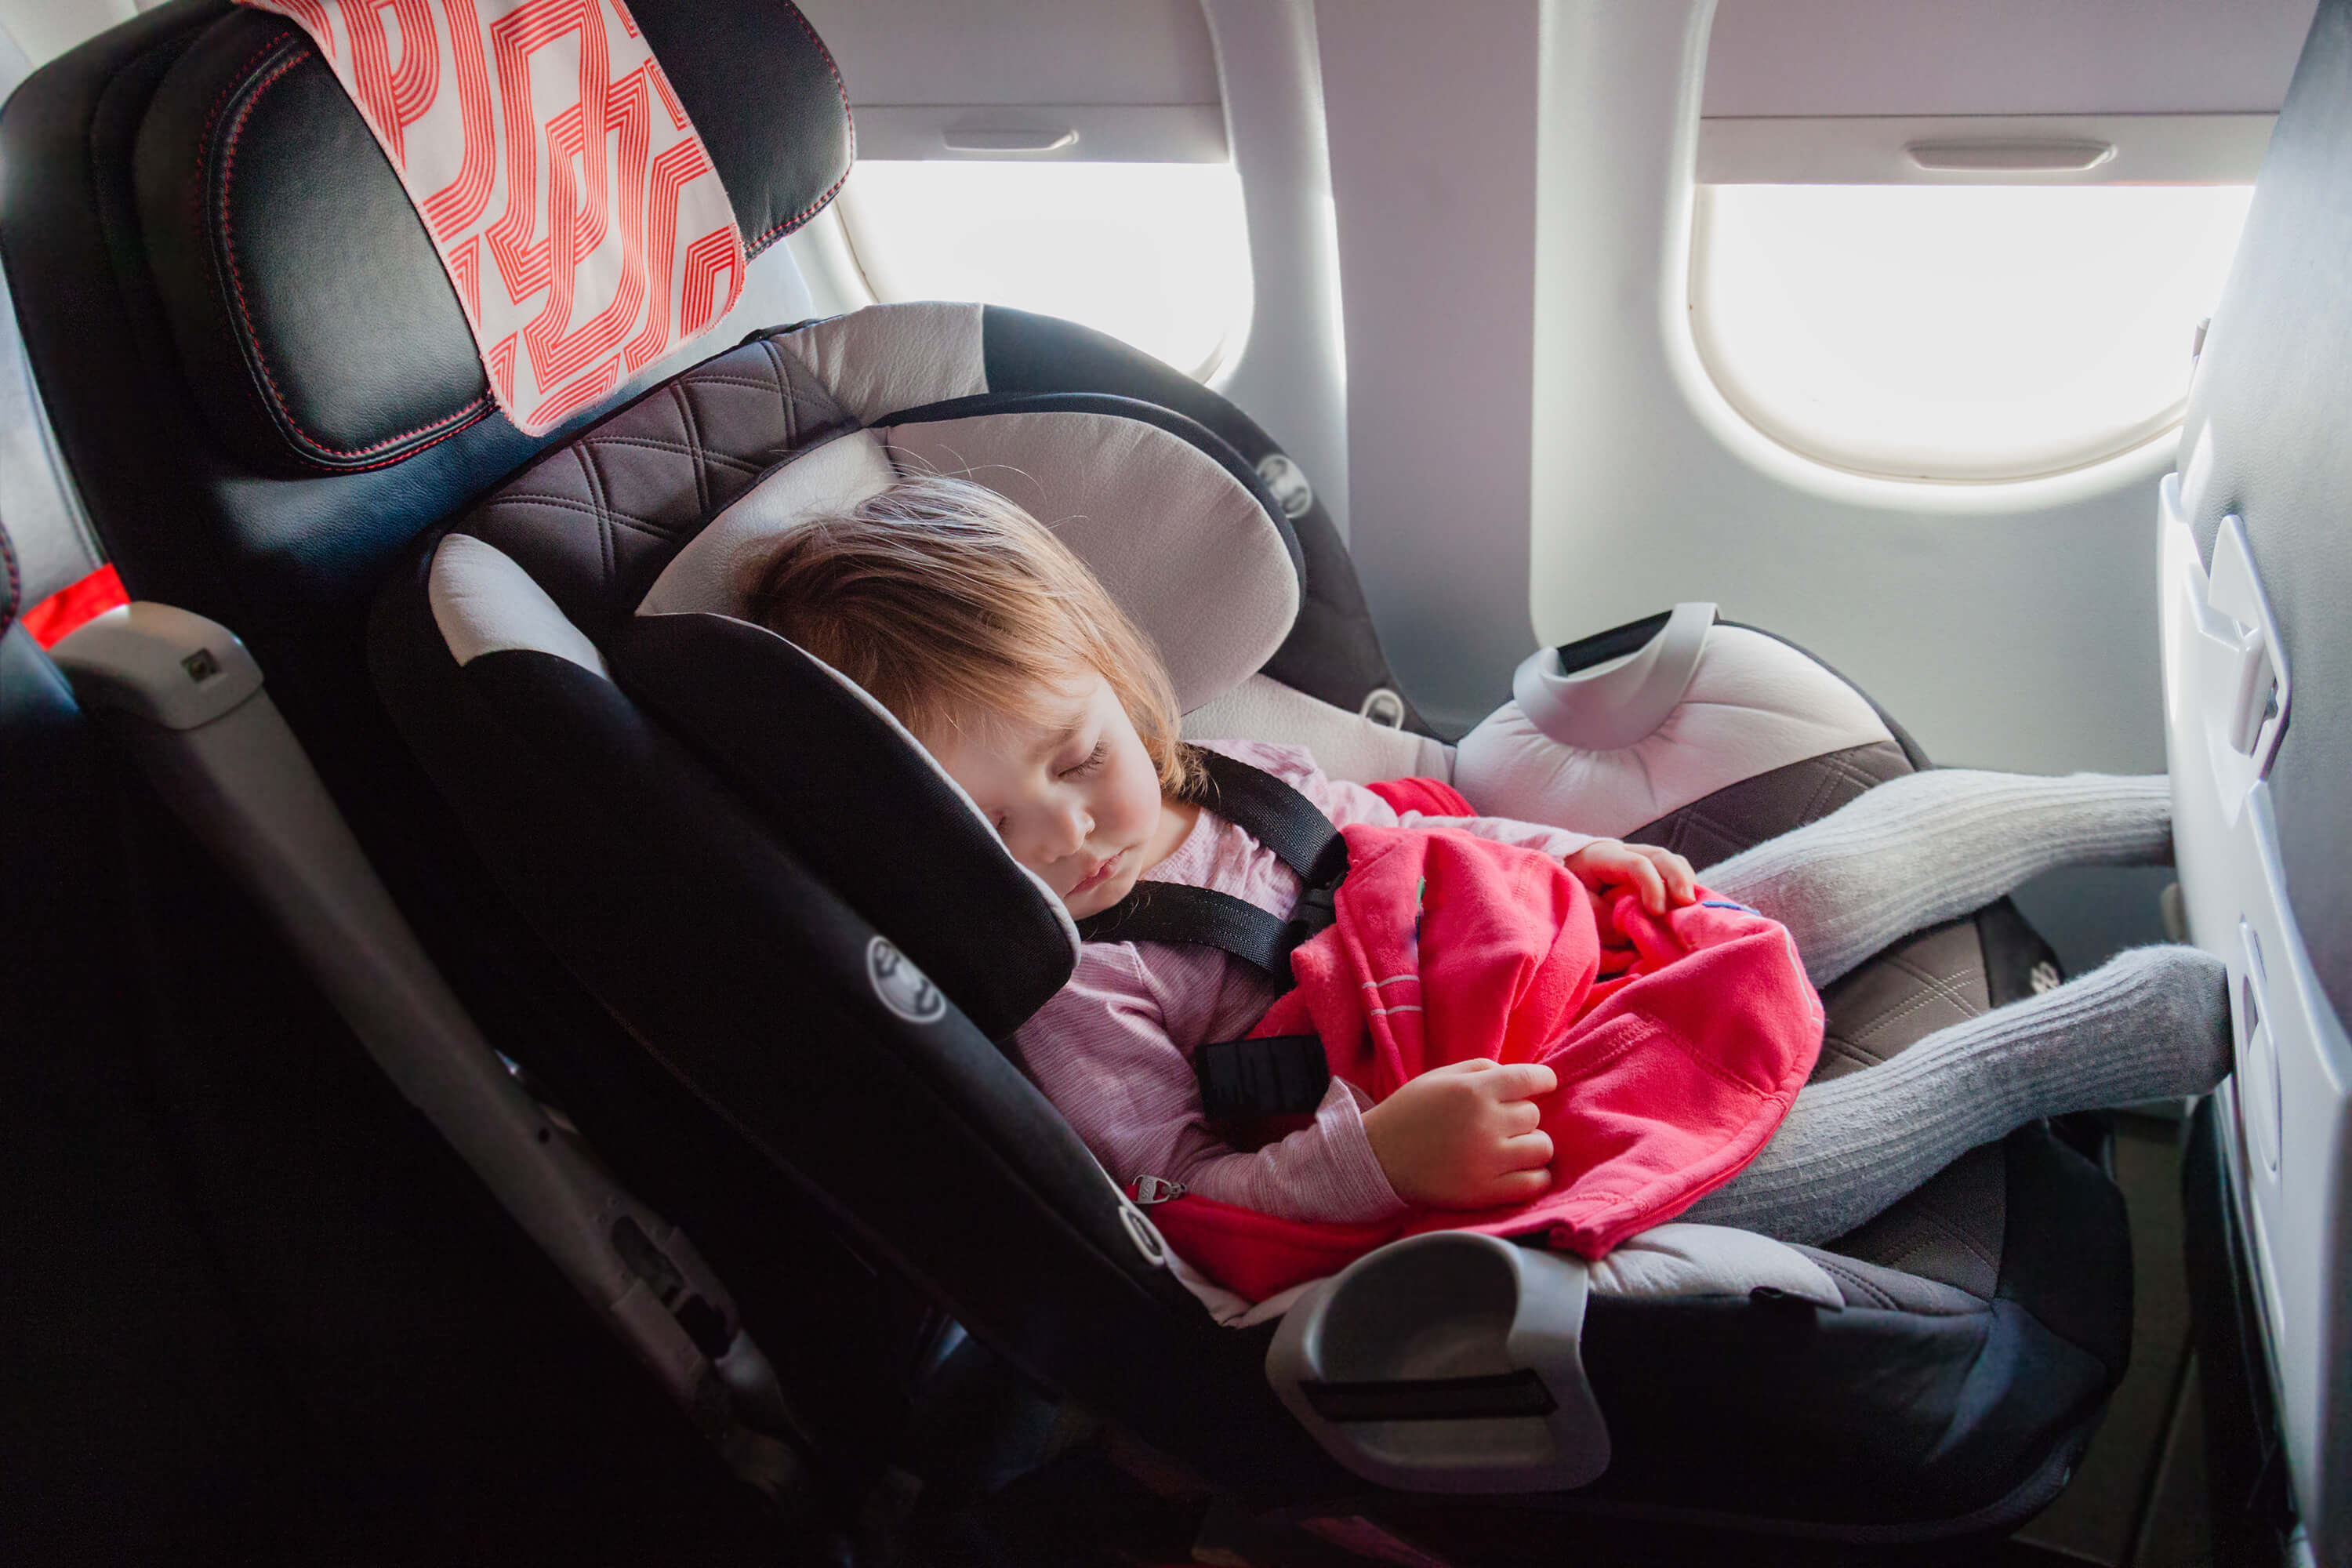 FAA approved car seats, car seats for air travel